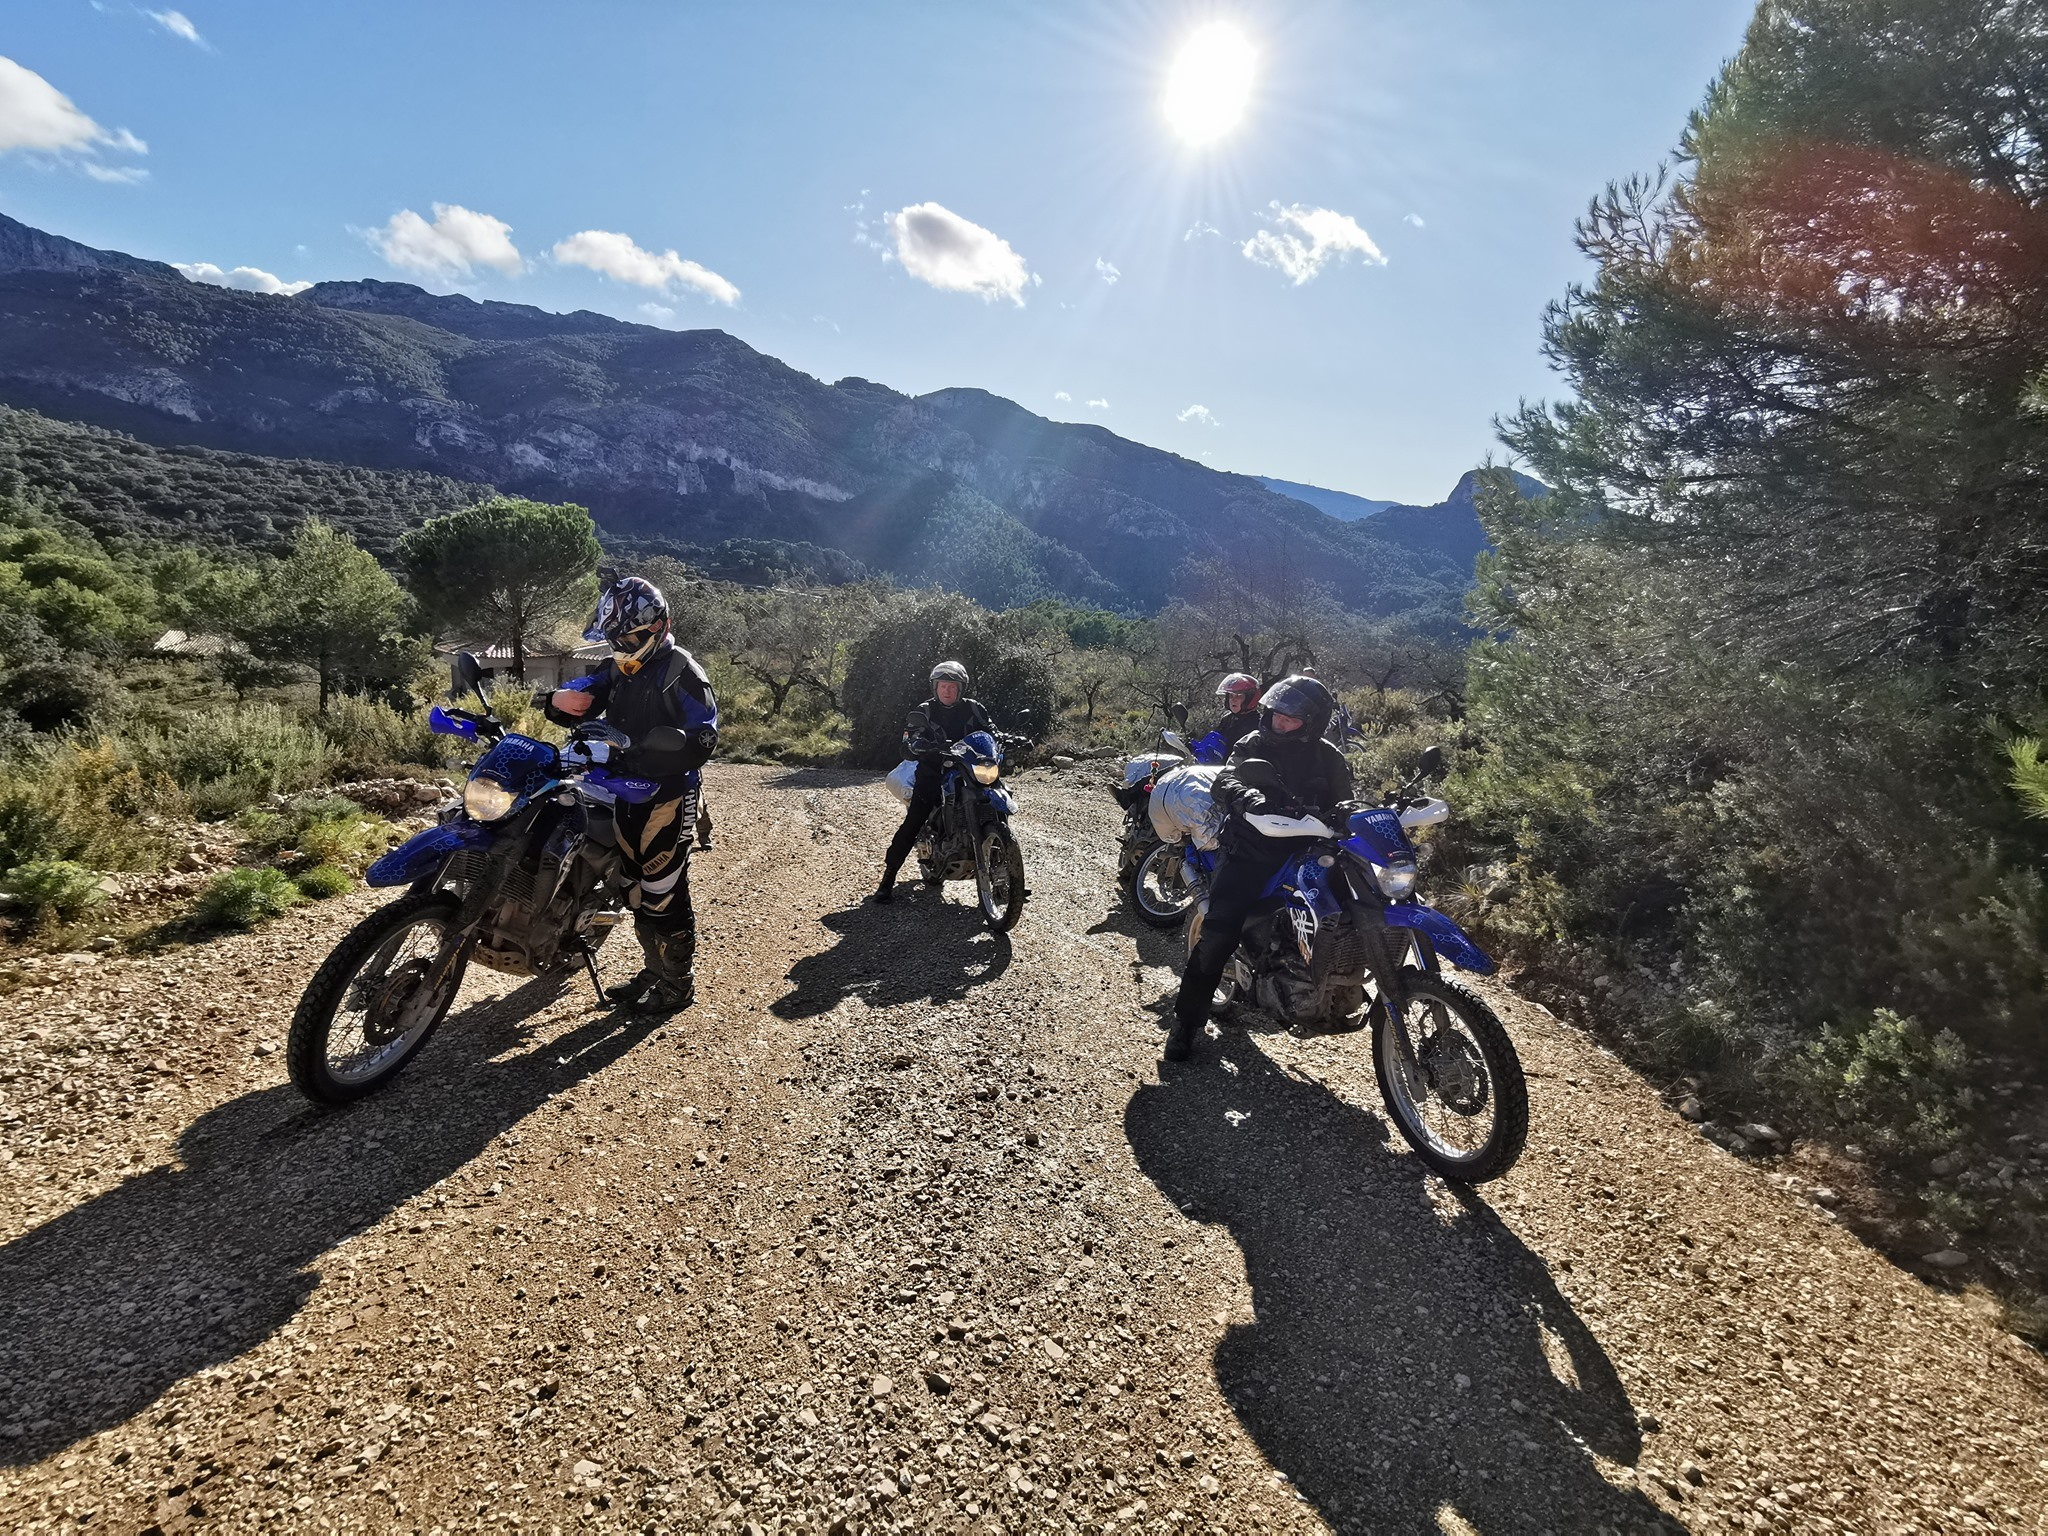 Spanish Offroad has been added to our regular offer!